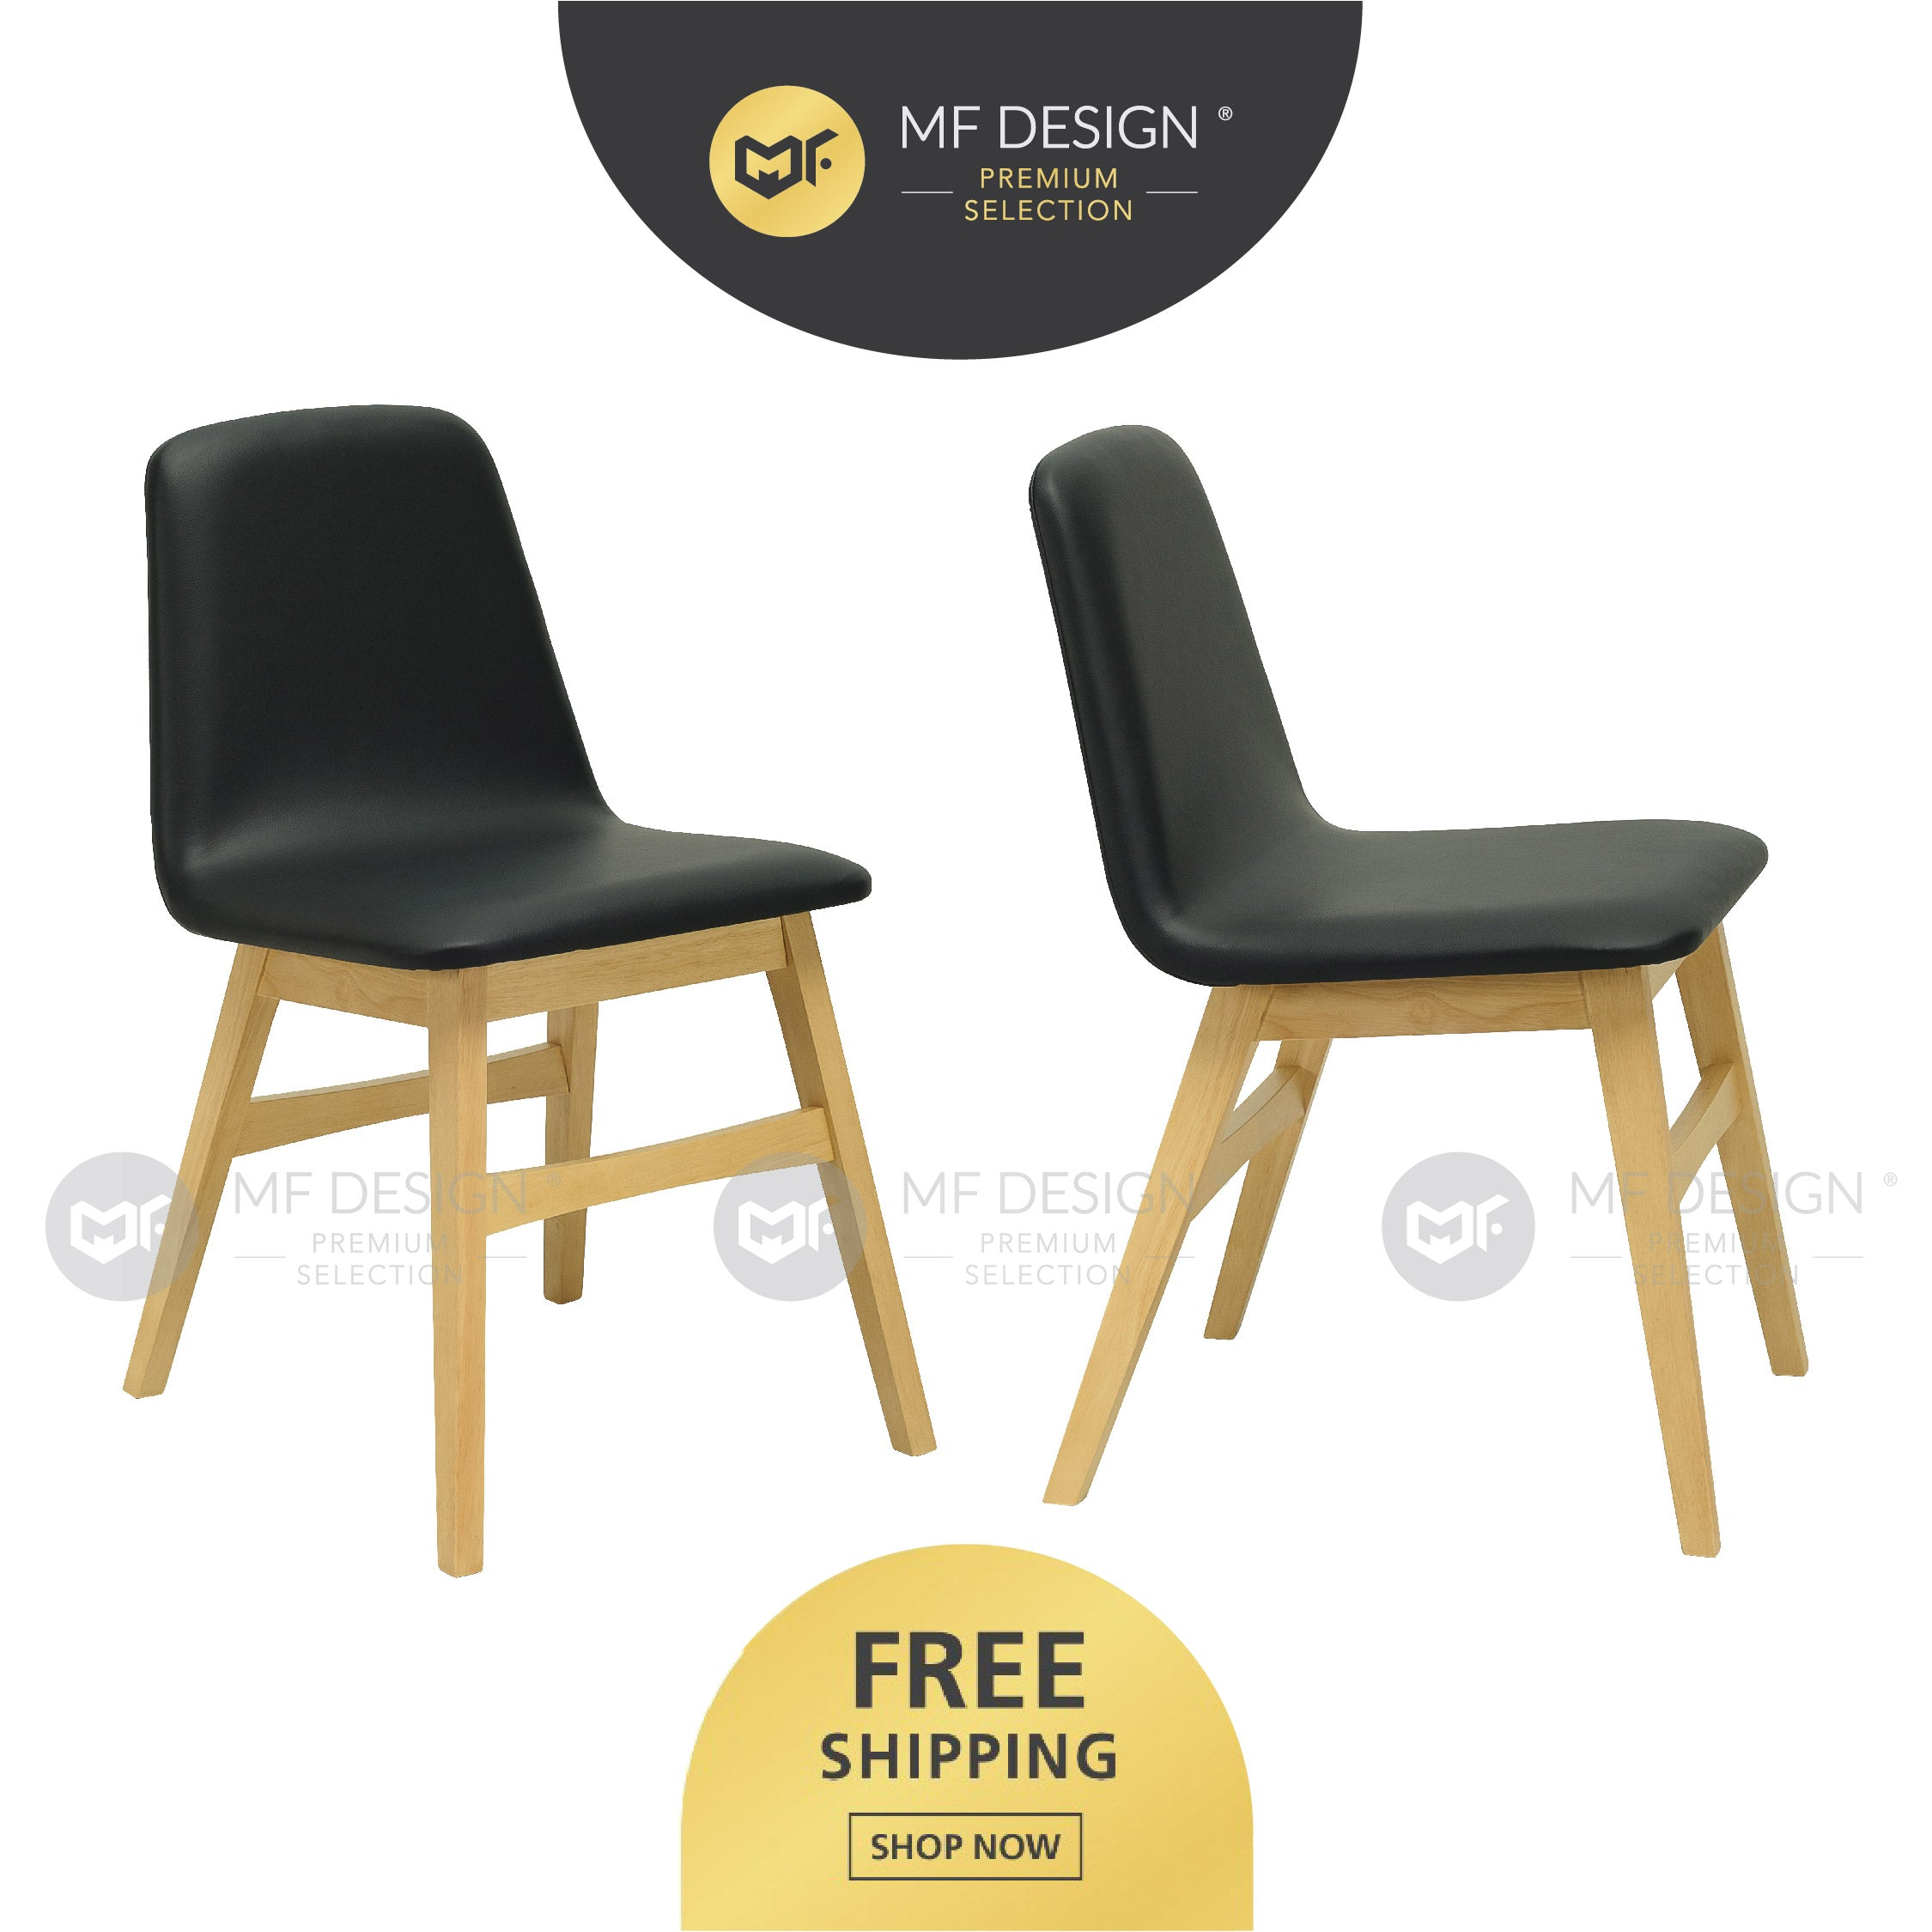 MFD Premium Angeline Dining Chair / Wooden Chair / Solid Rubber Wood / Kerusi Makan Kayu Getah / Living Room